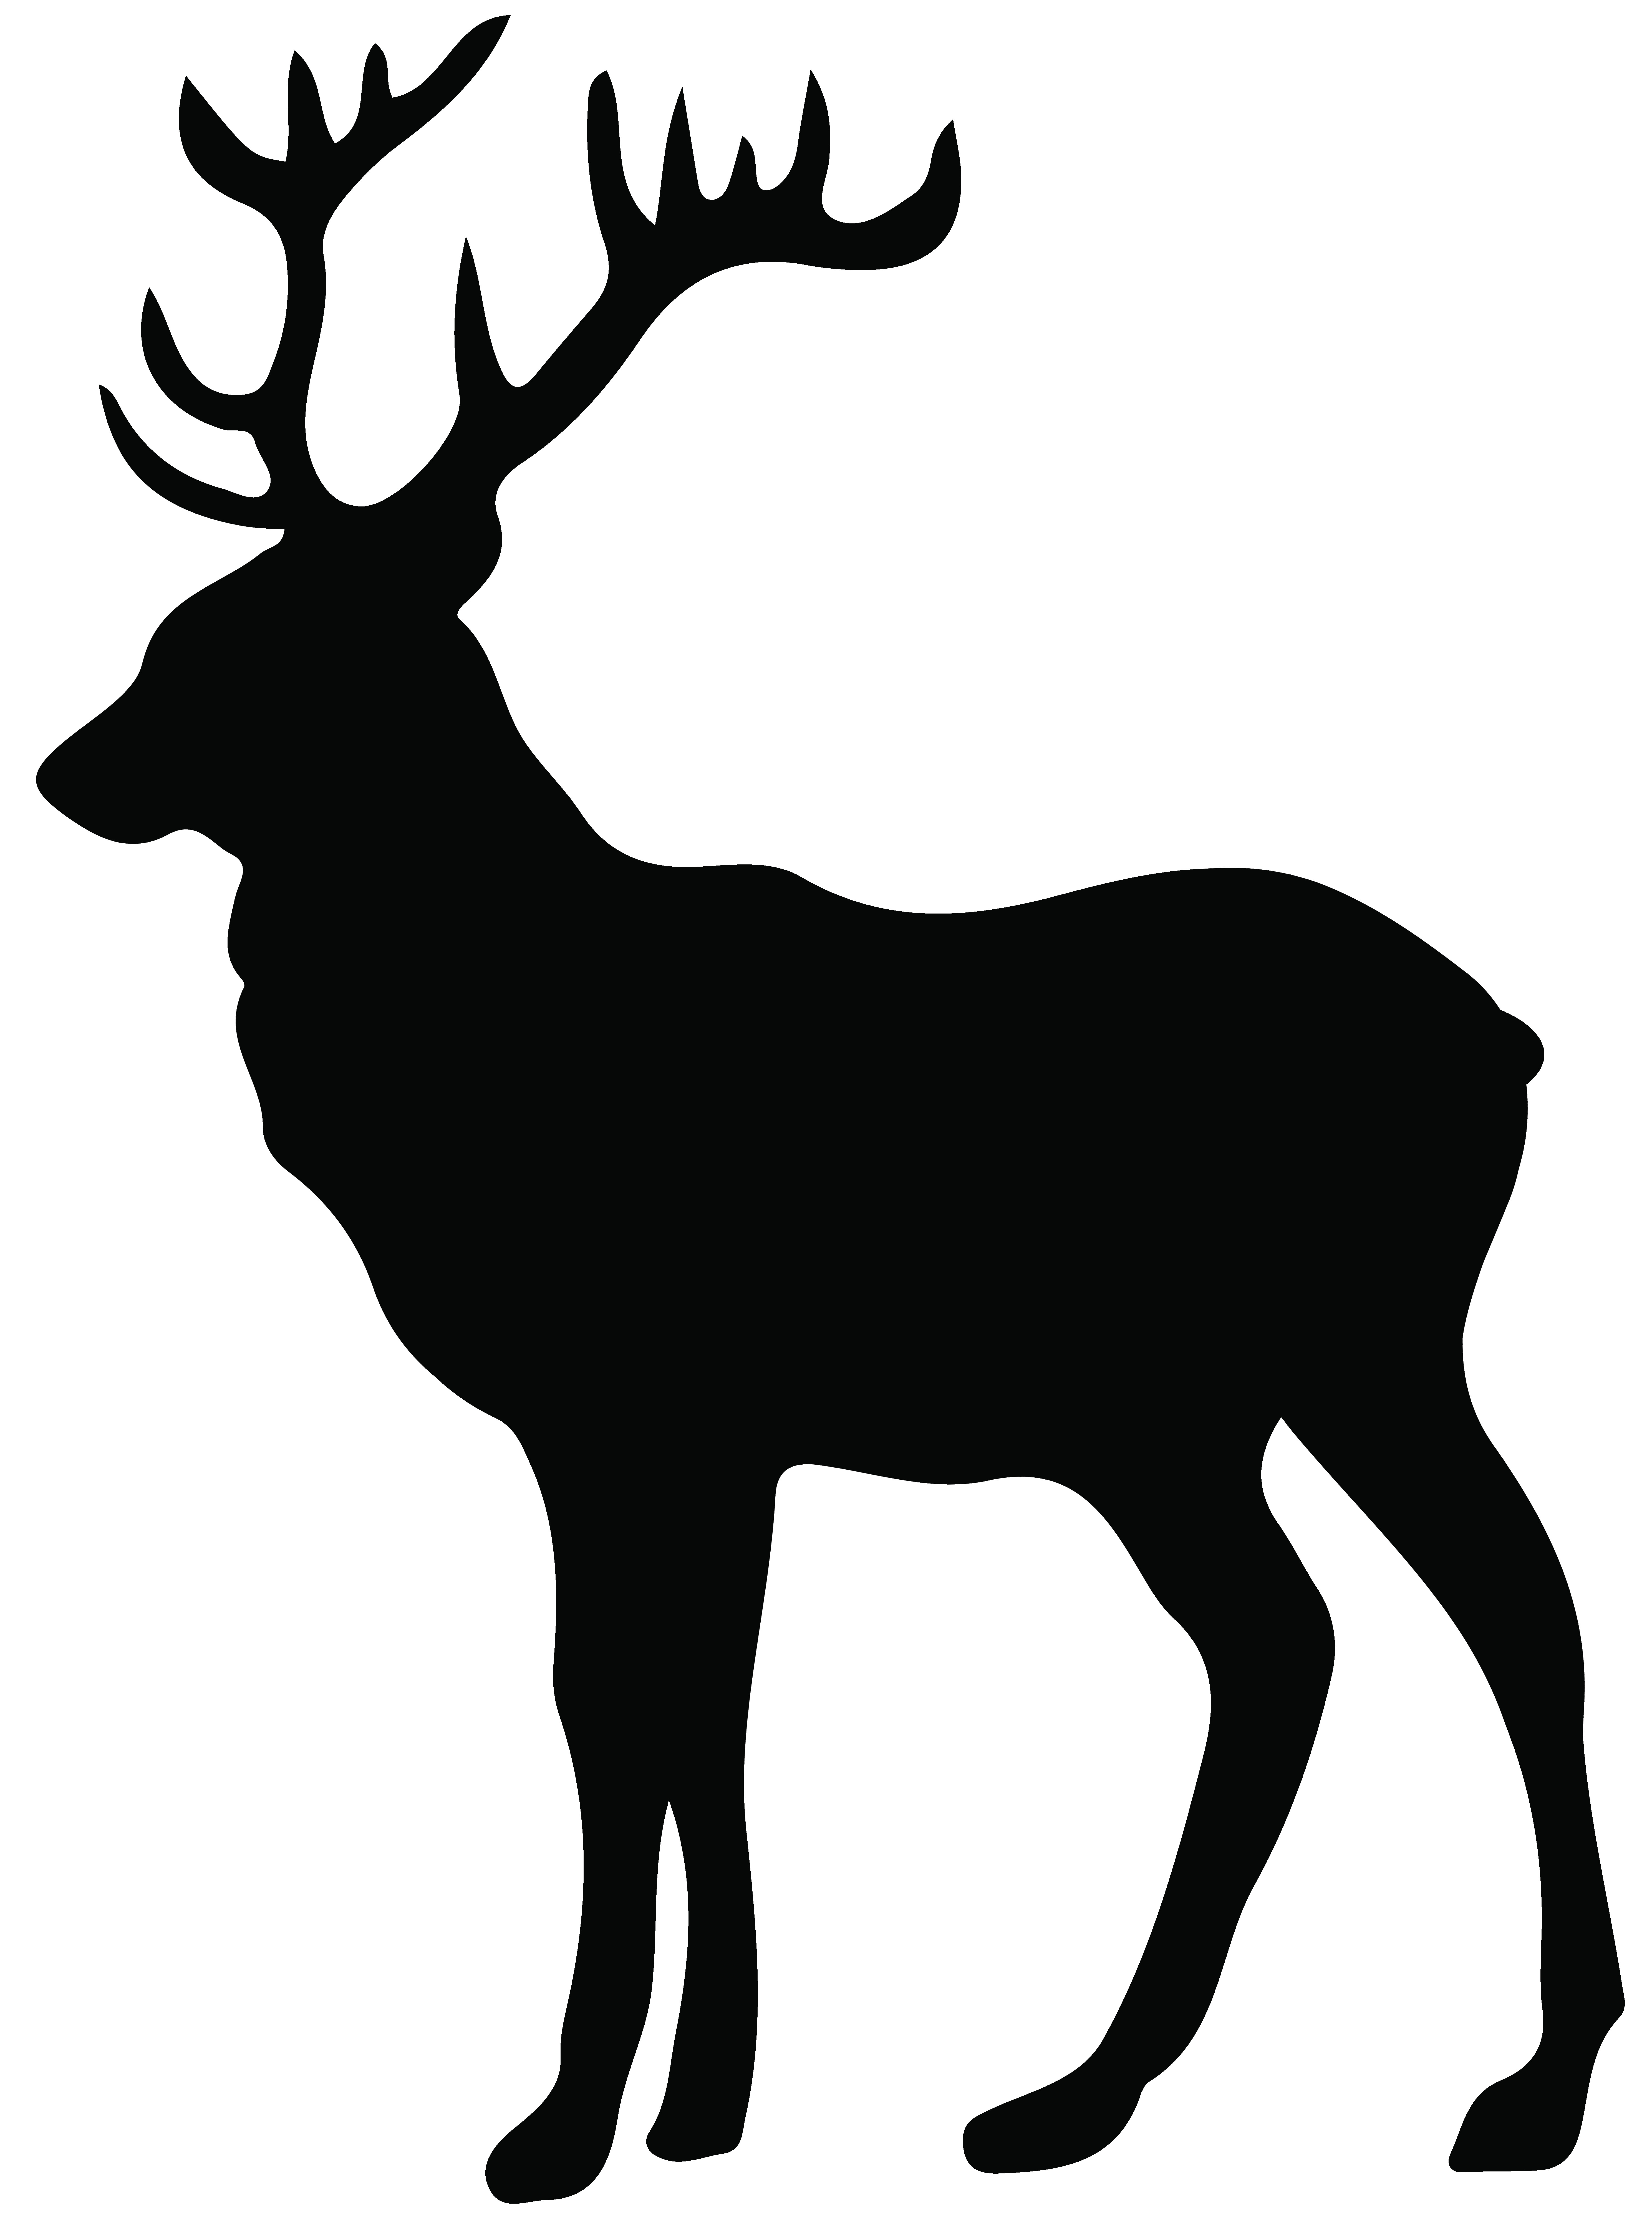 5953x8000 Stag Silhouette Png Transparent Clip Art Image Gallery Unusual